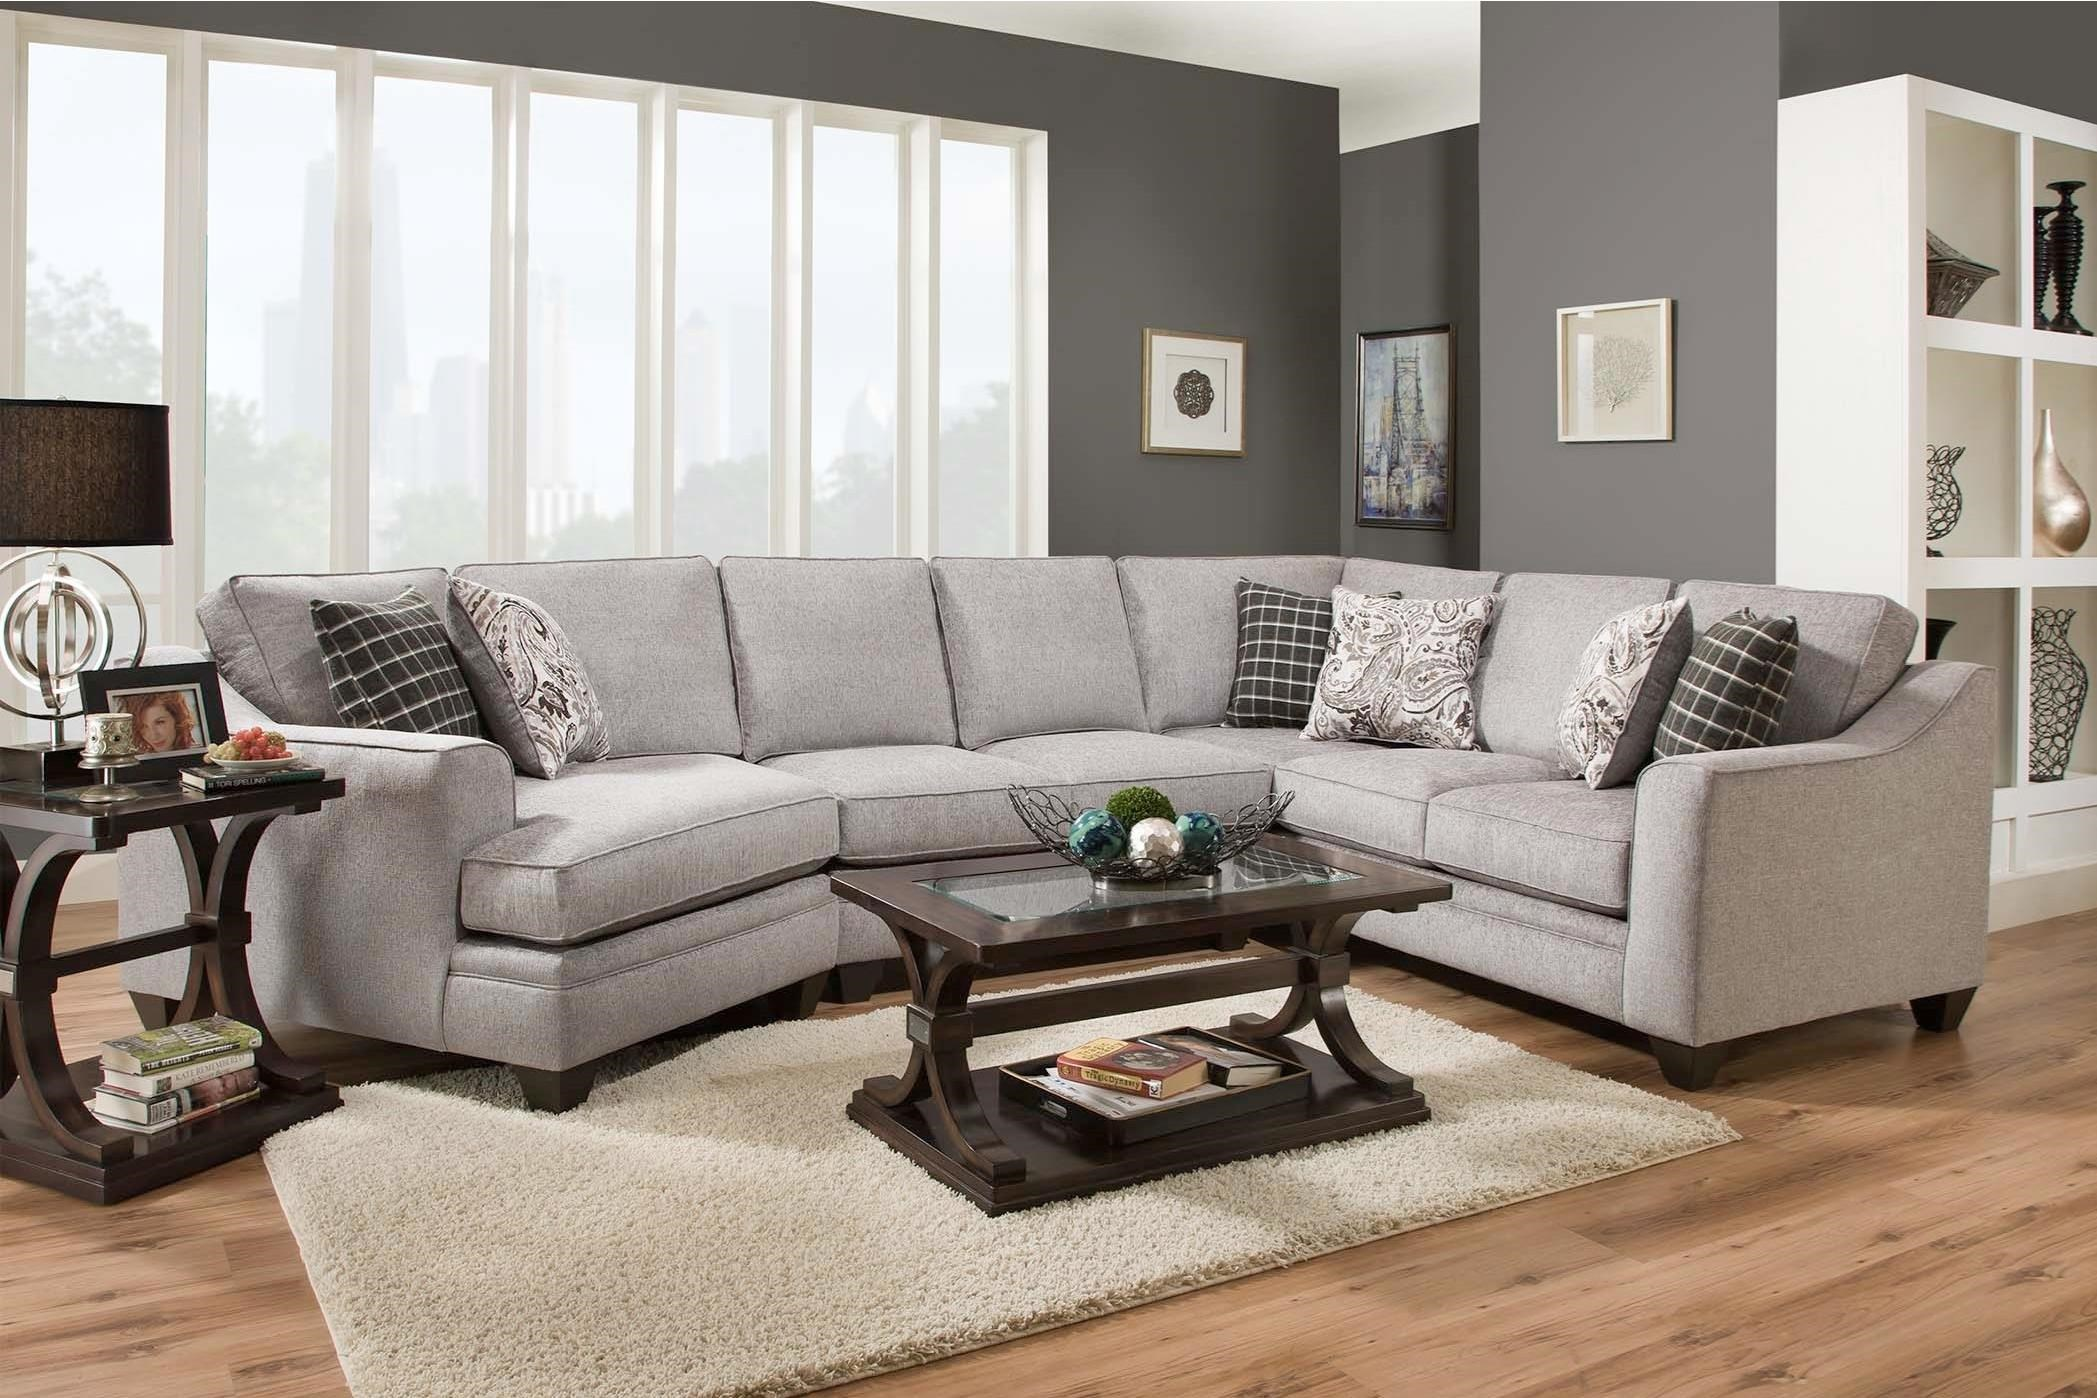 3900 3-Piece Sectional by Peak Living at Prime Brothers Furniture